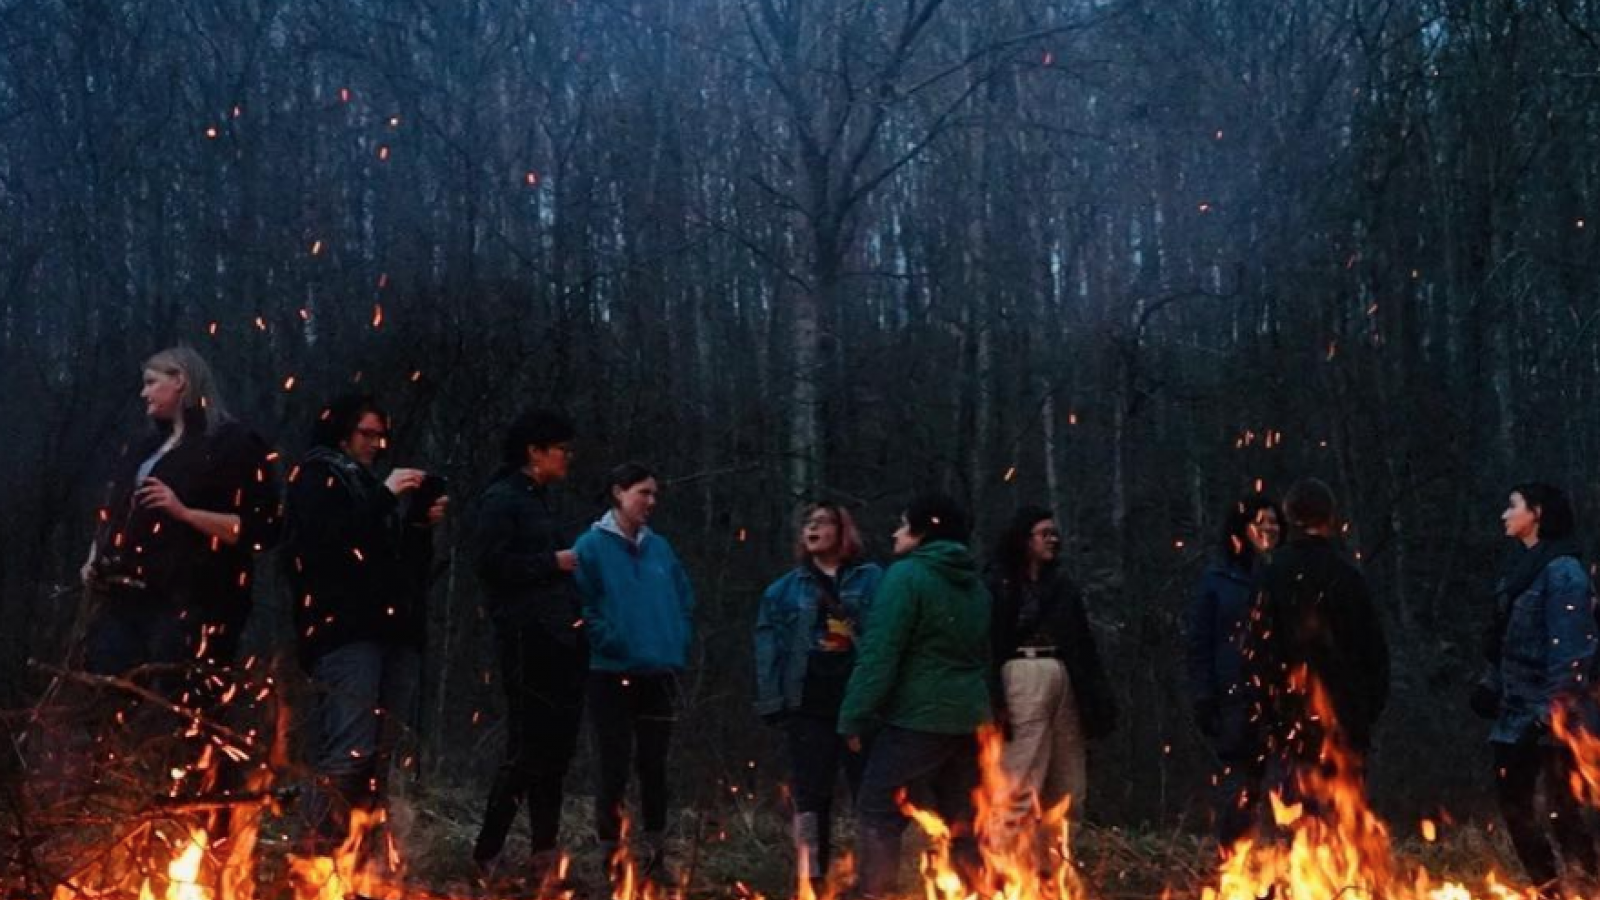 Image of field school students standing behind a fire in the woods